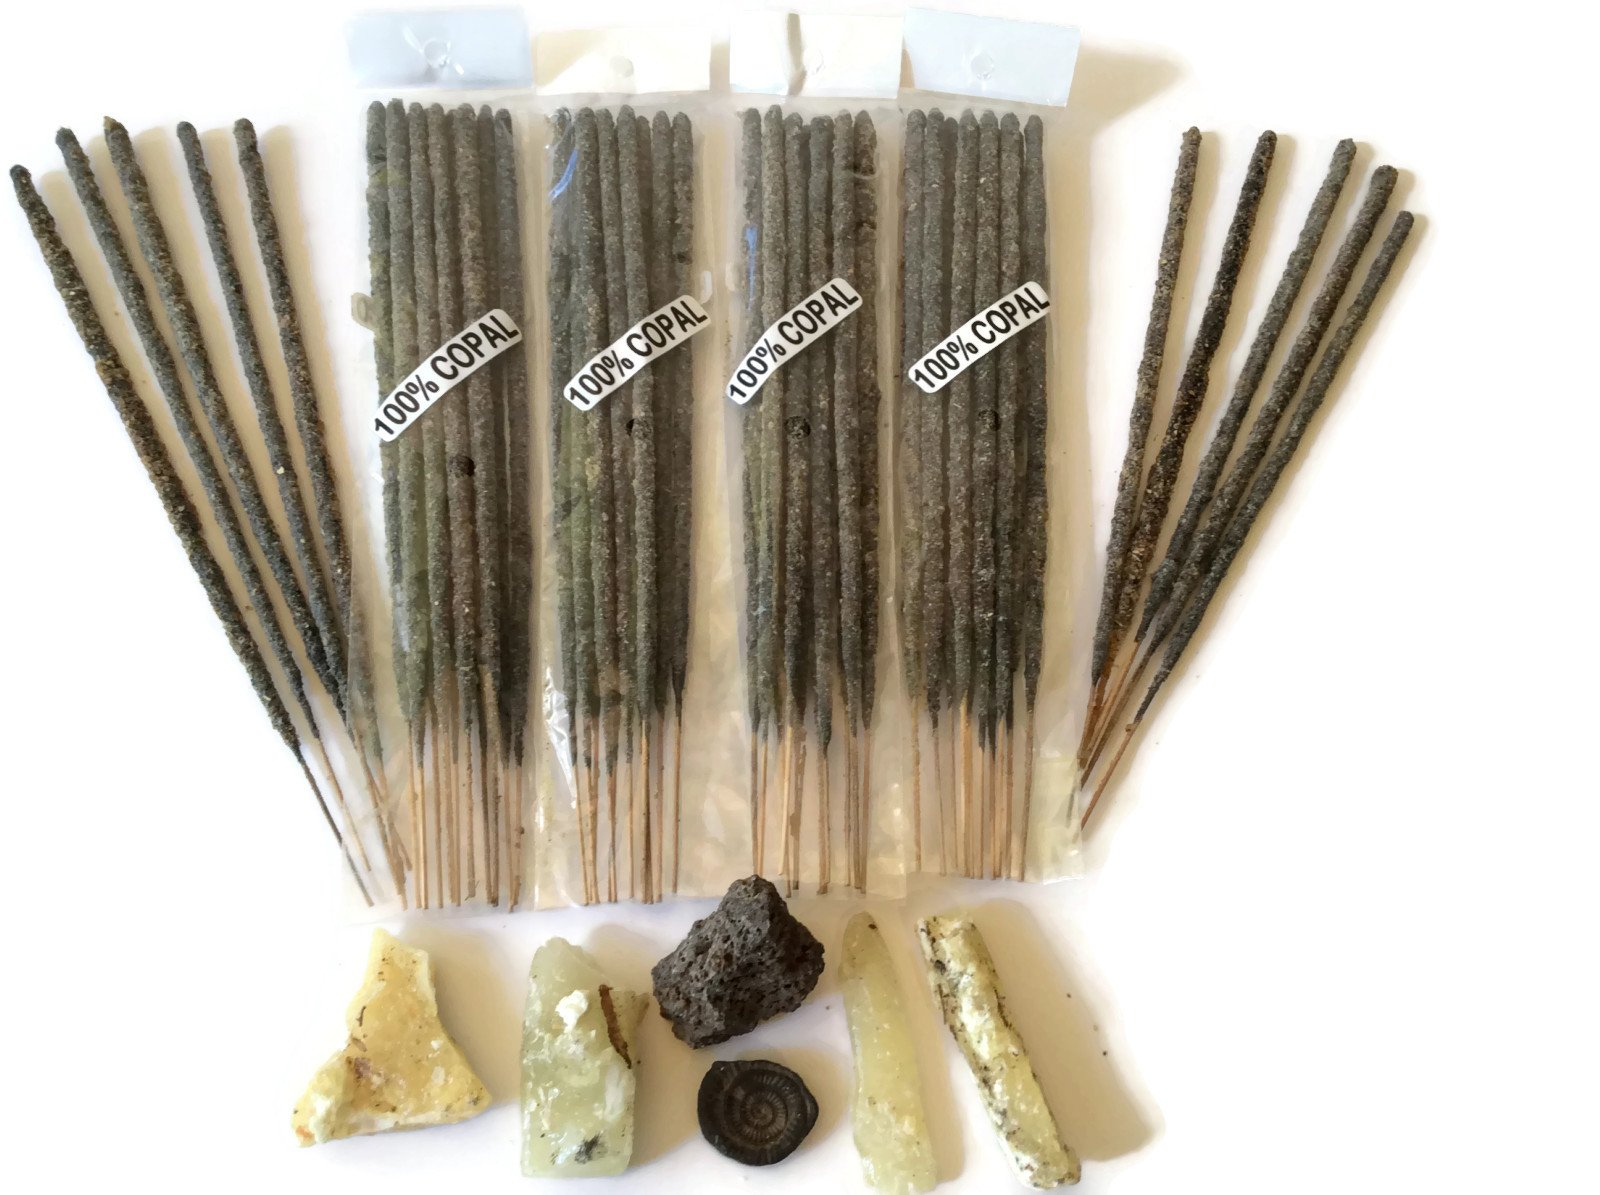 Mexican Copal Incense 500 Sticks Handmade in Mexico with Authentic Copal Resin.